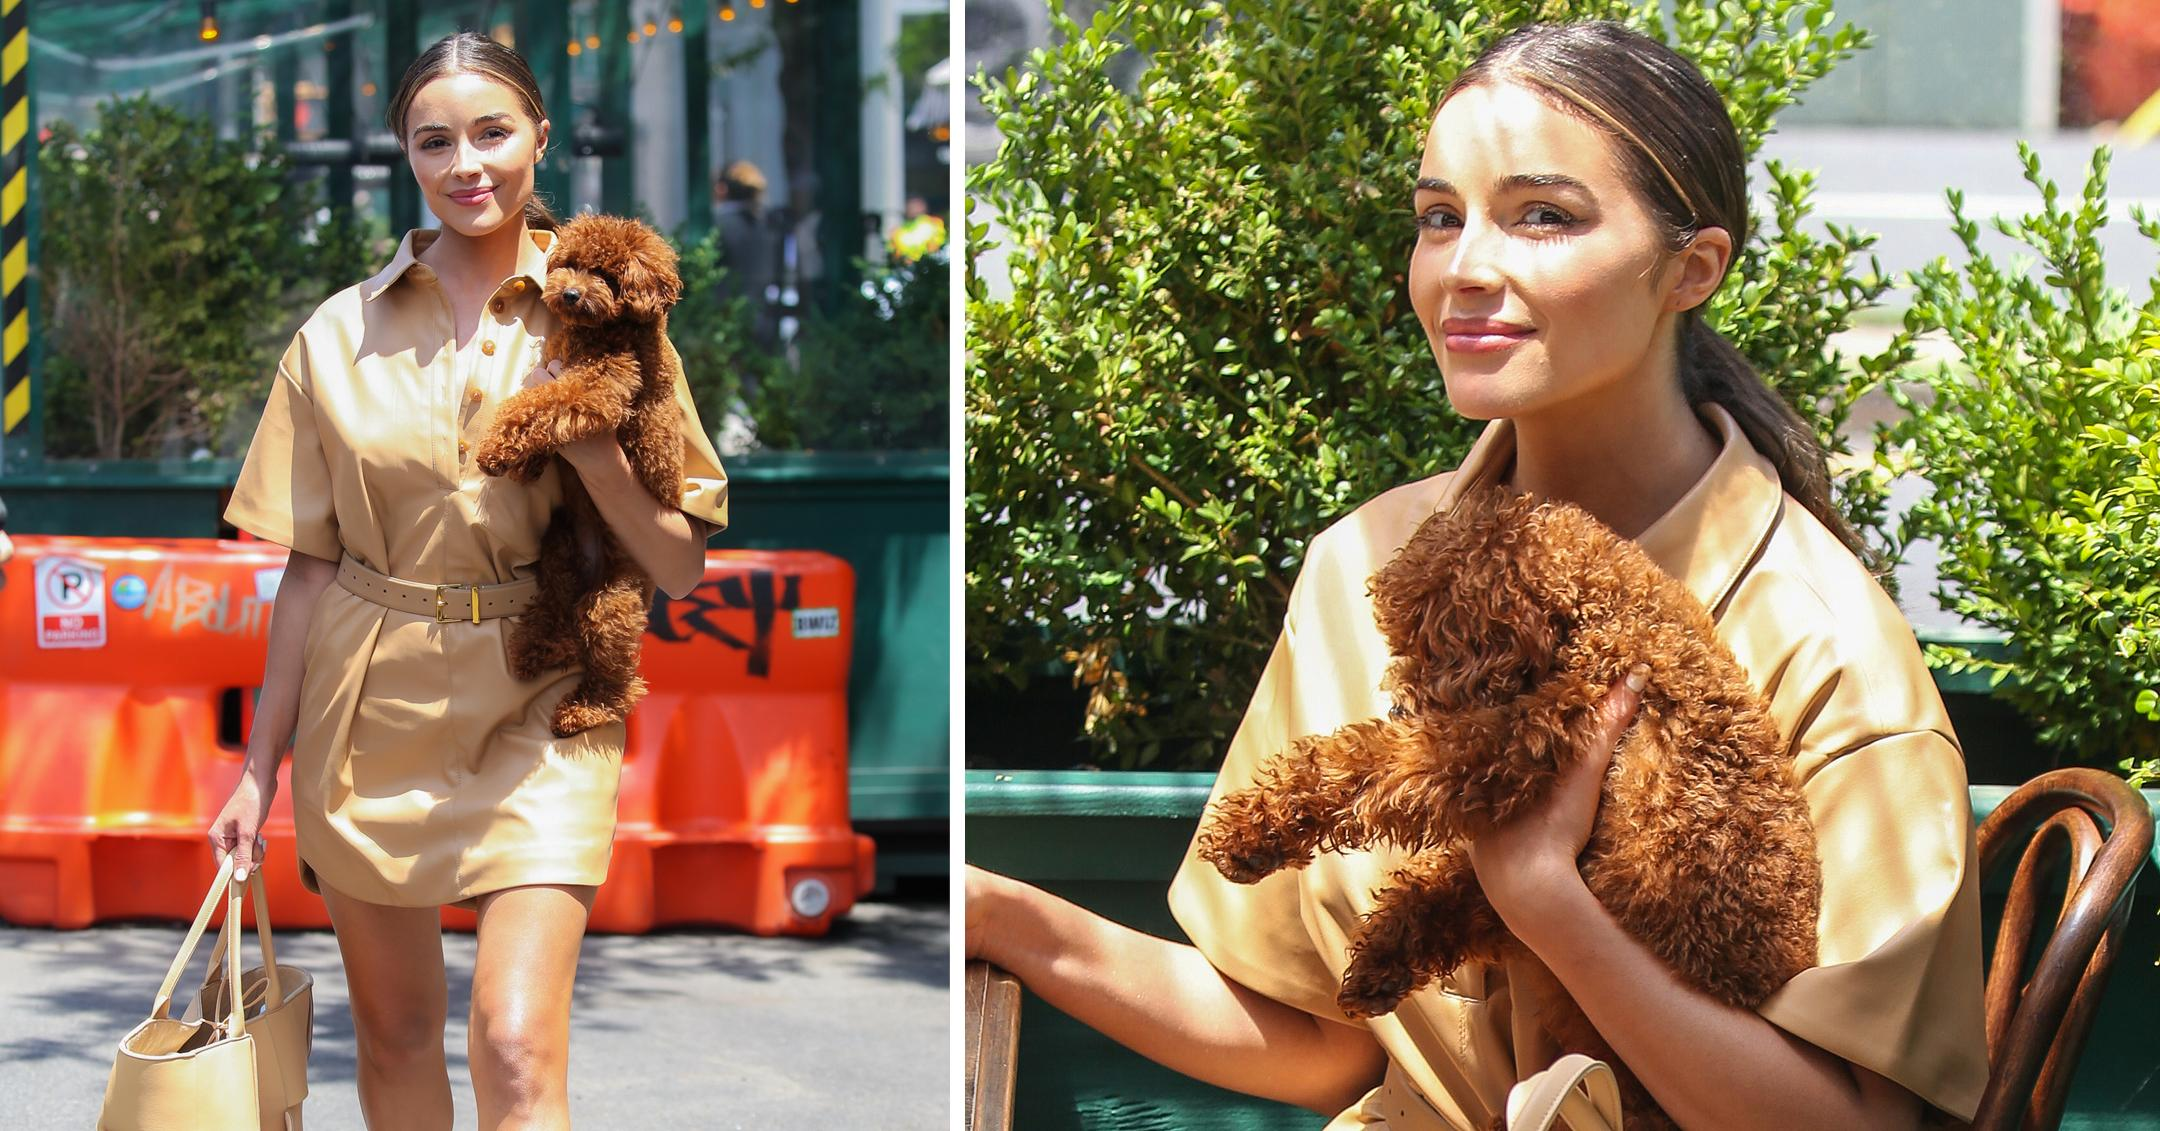 olivia culpo seen with puppy while leaving gemma restaurant in nyc